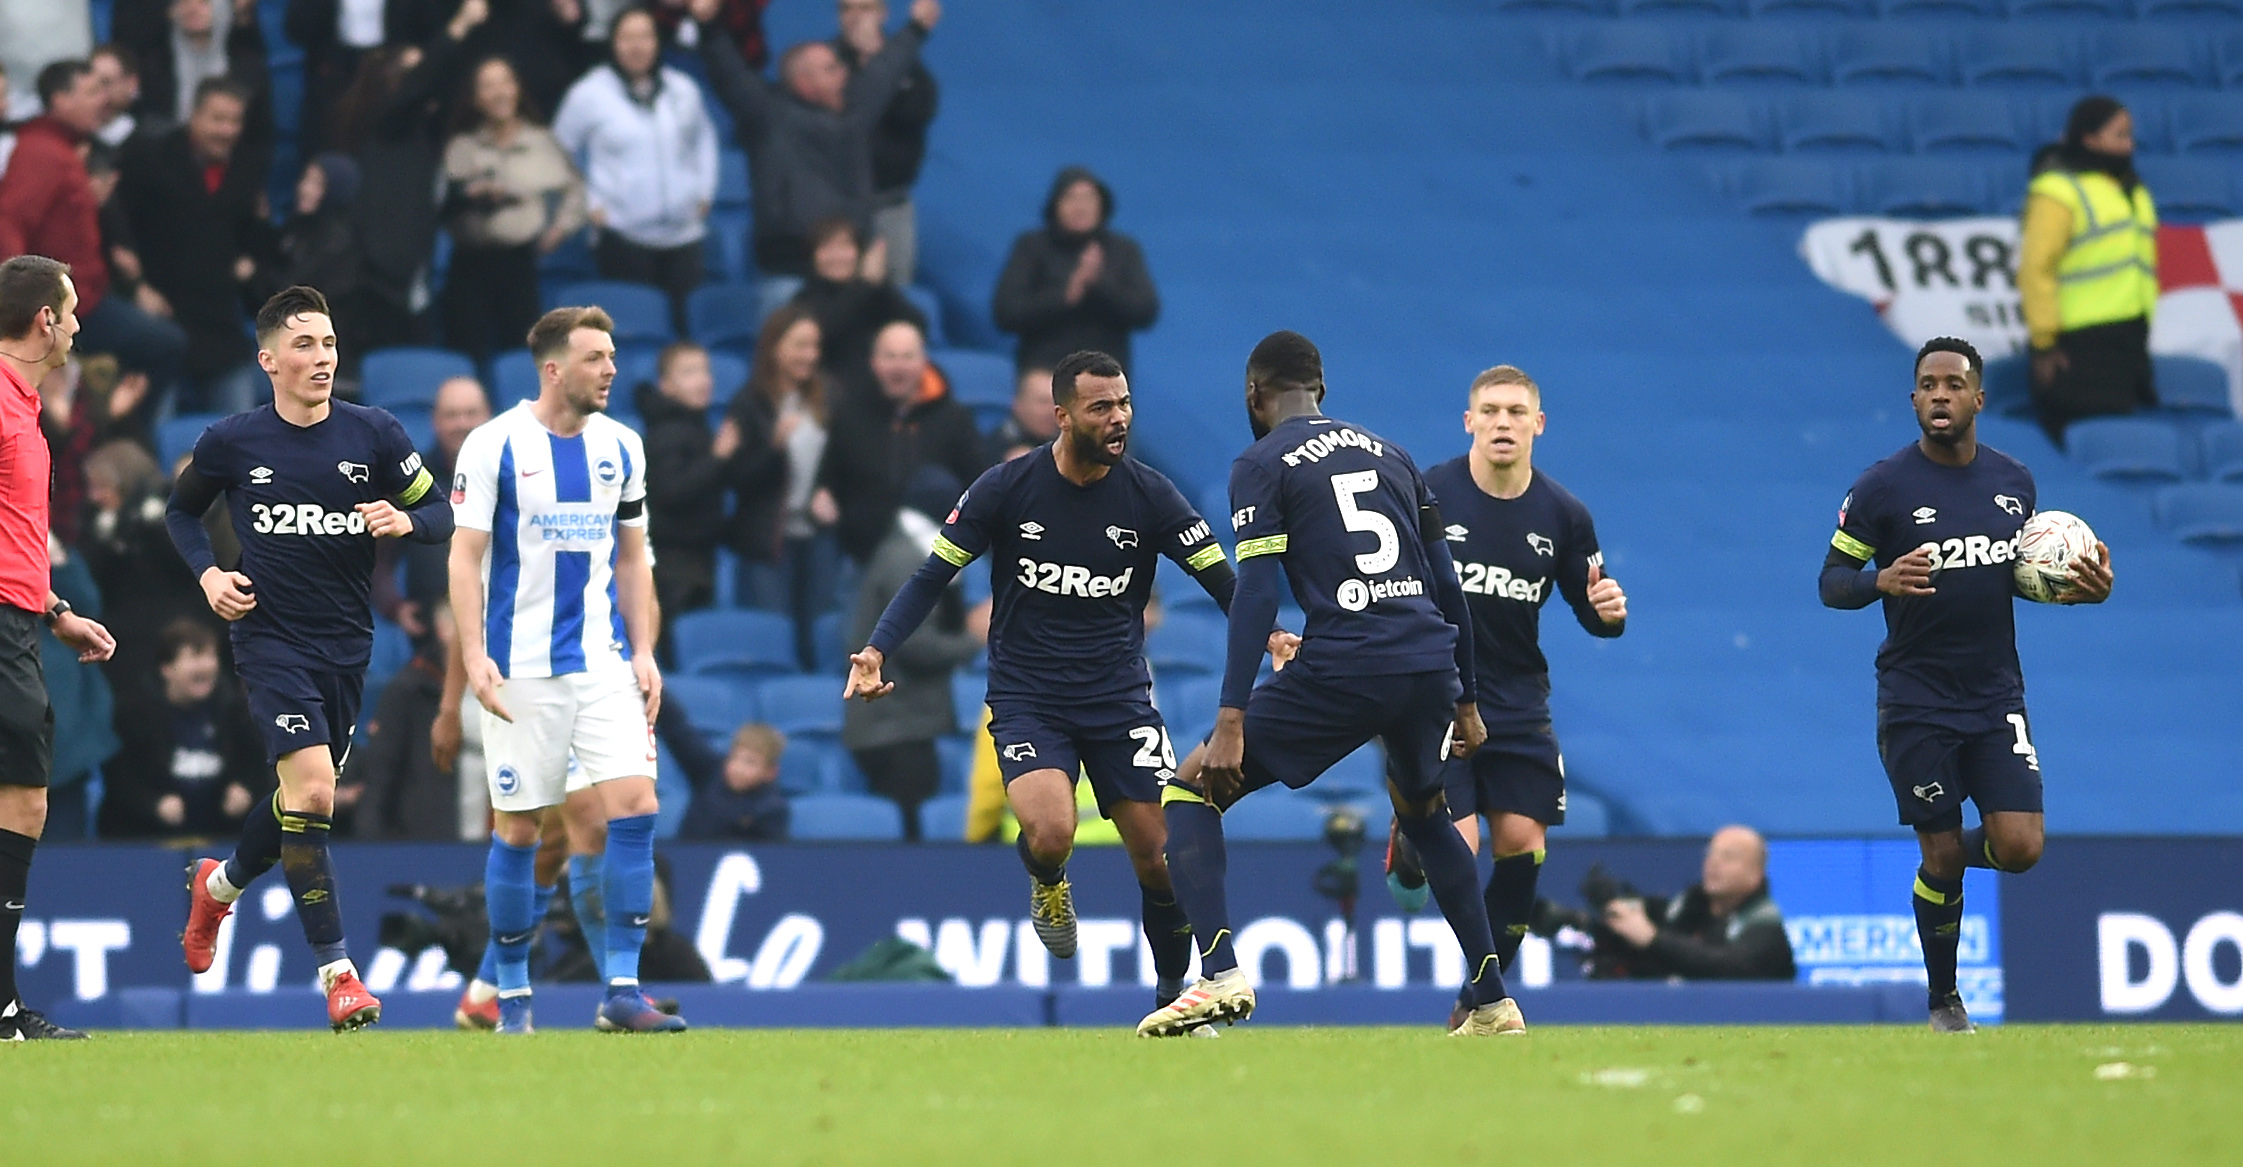 Duffy spared Albion more second half nerves